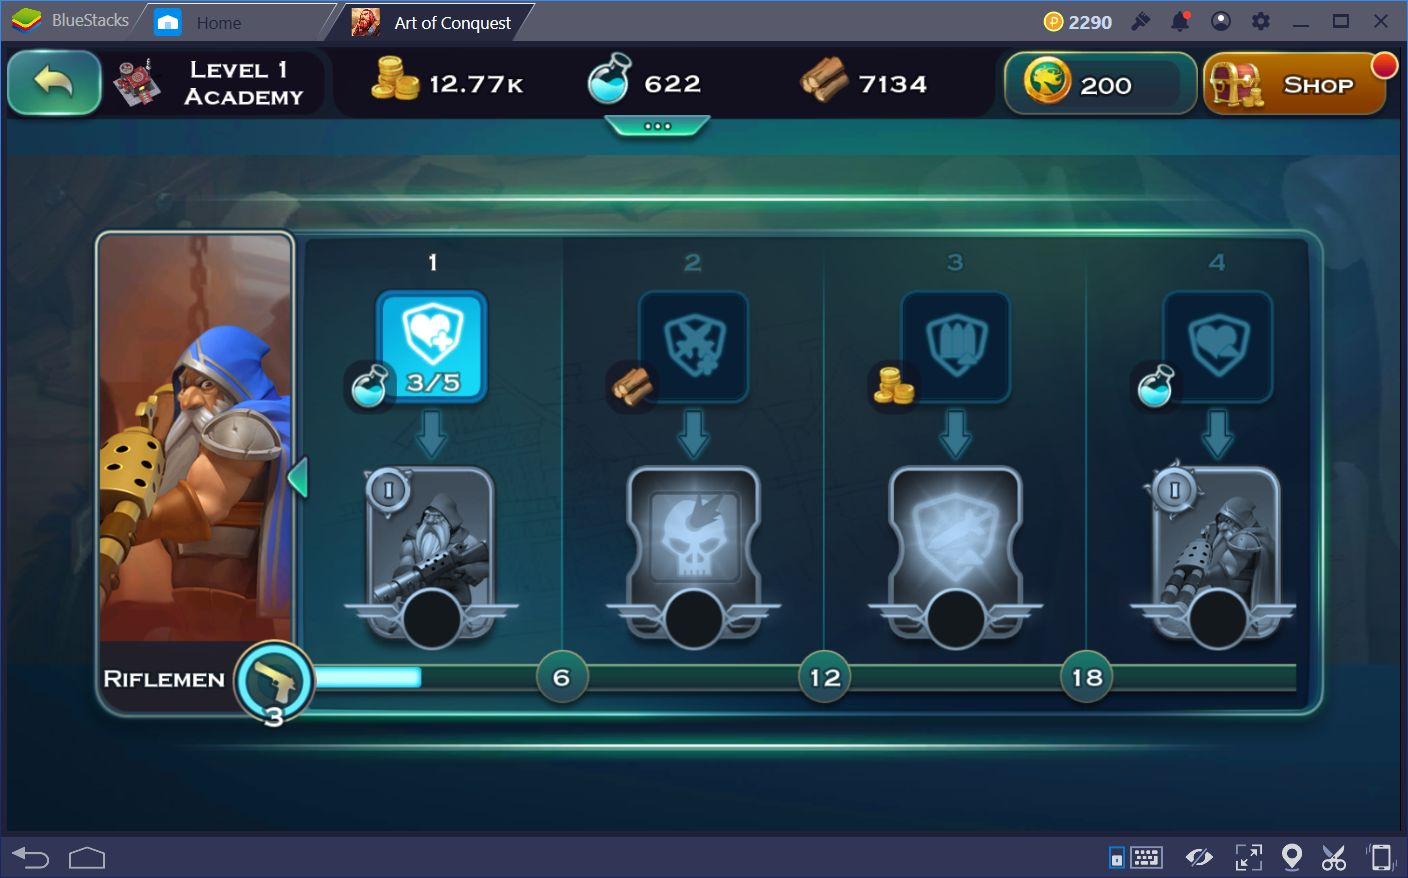 General Tips for Art of Conquest